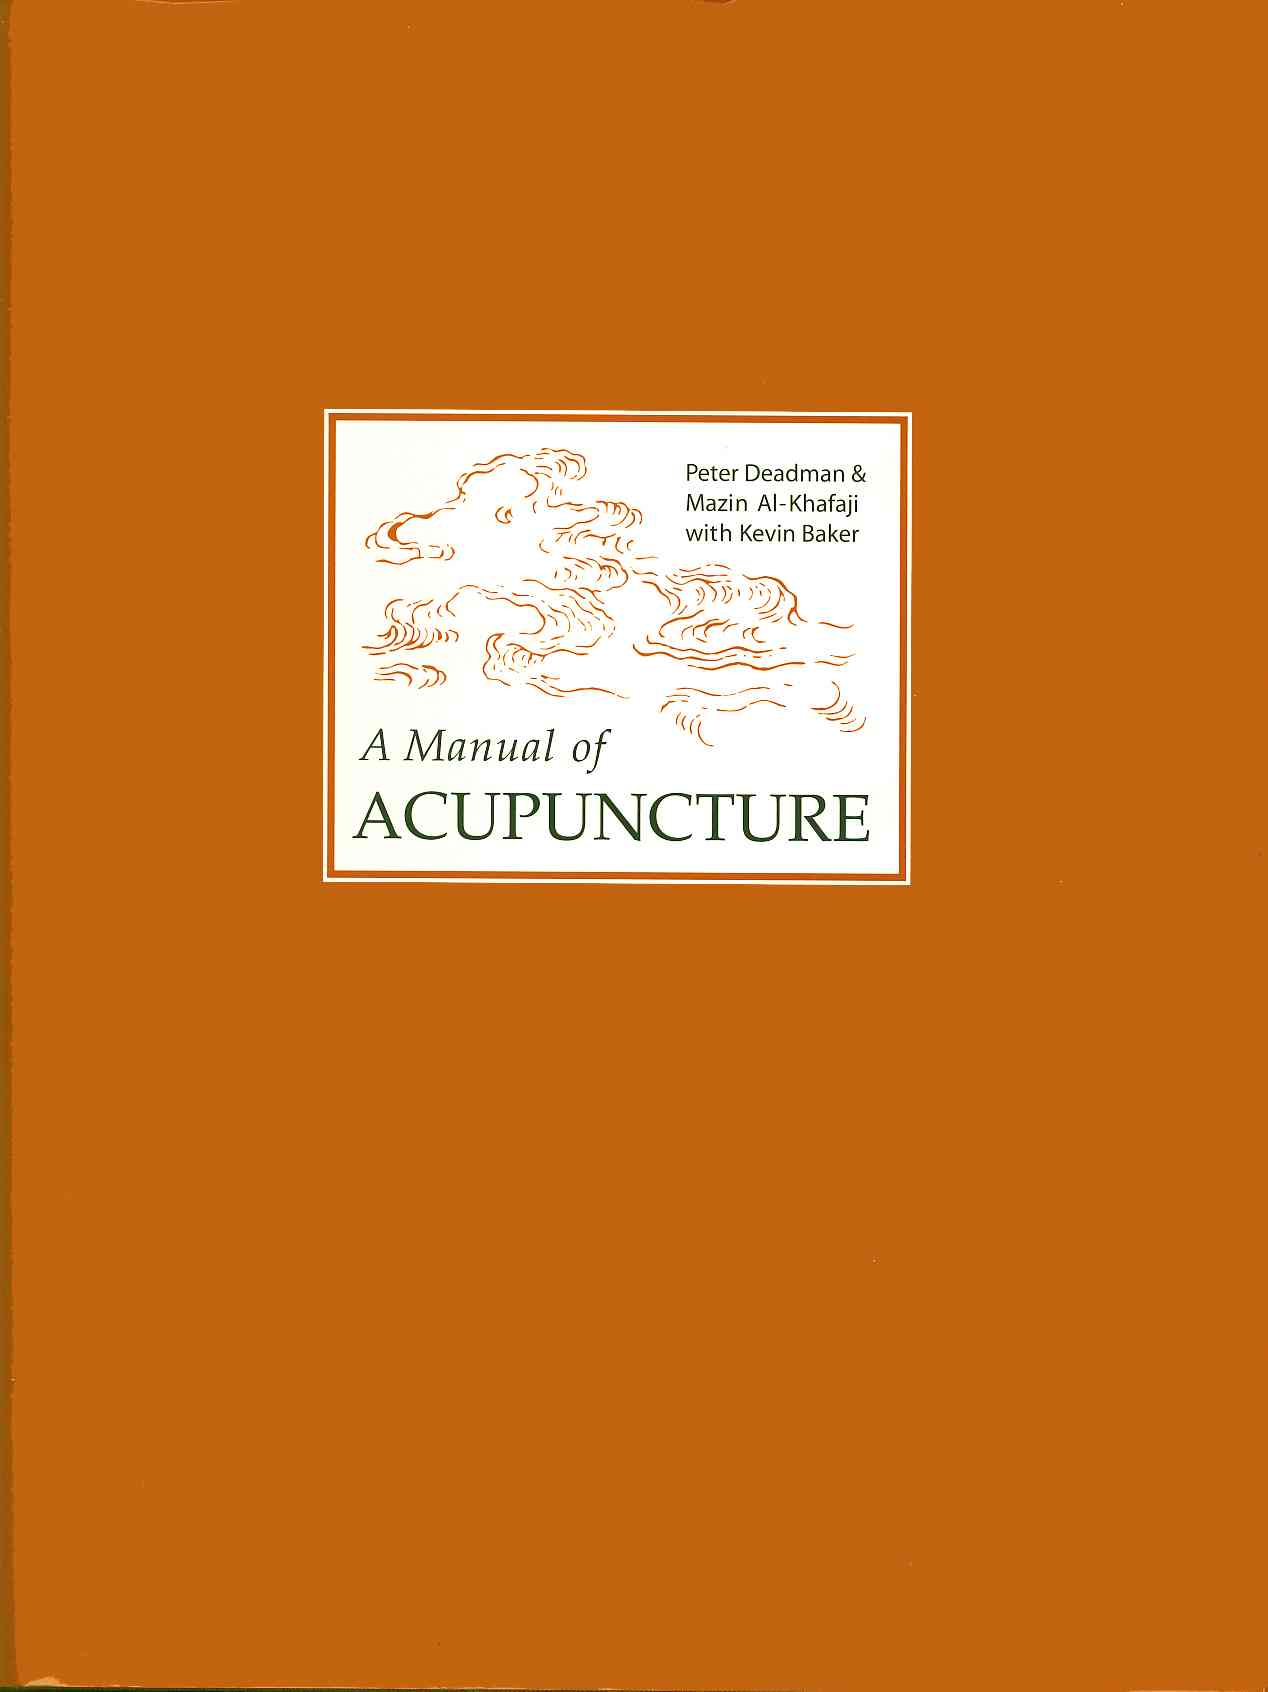 A Manual of Acupuncture (Hardcover)